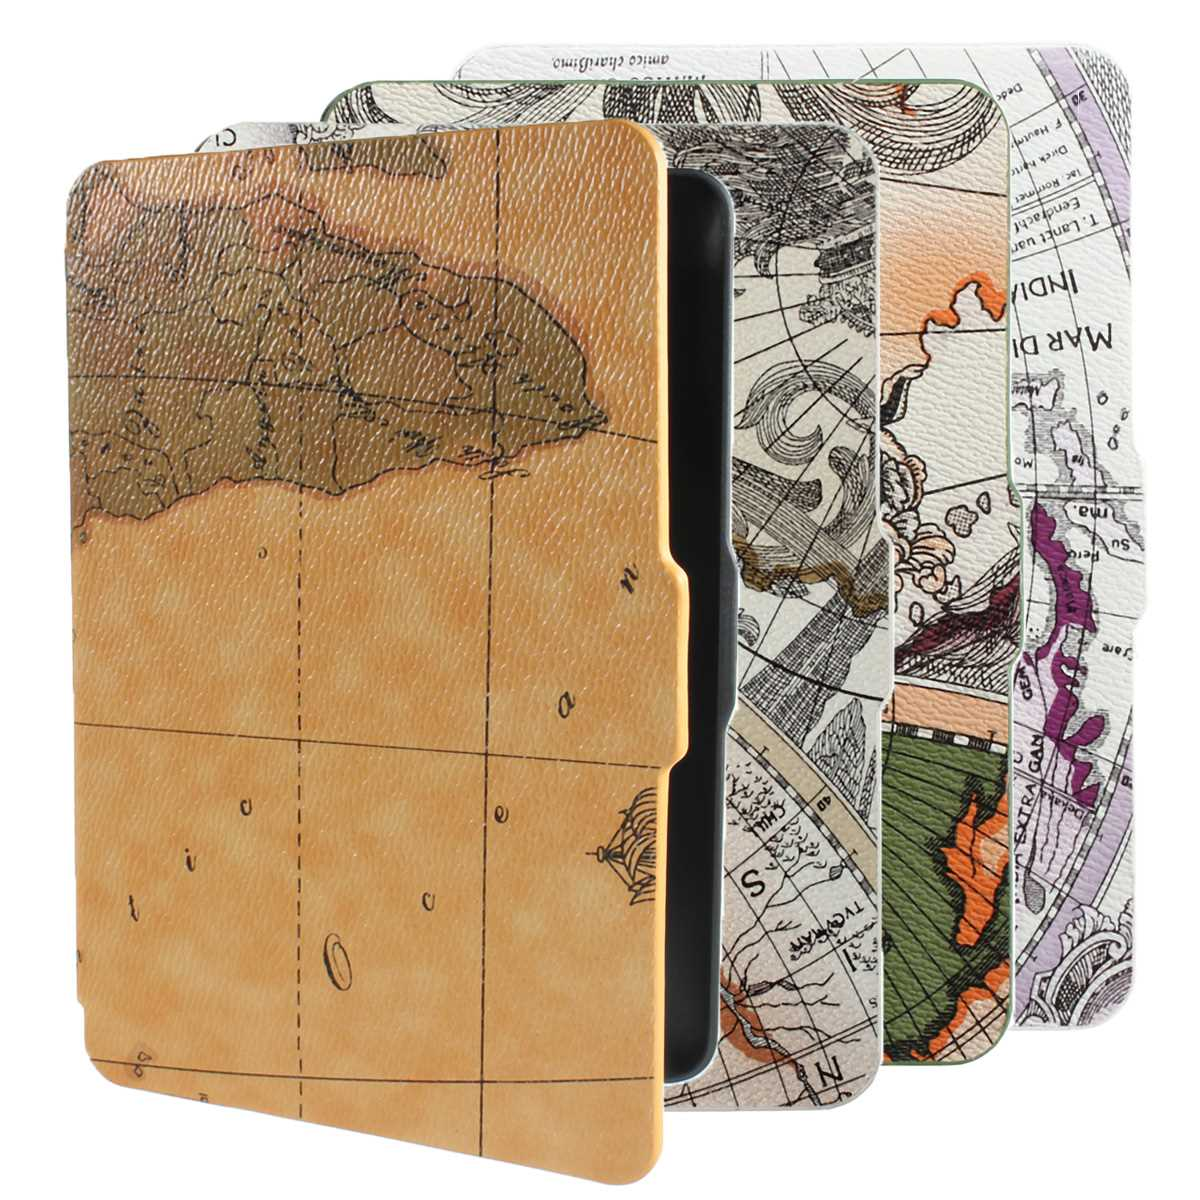 6 inch Retro World Map Pattens PU Leather Smart Anti-Dust Paperwhite cover case Pad for kindle  with wakeup/sleep function<br><br>Aliexpress